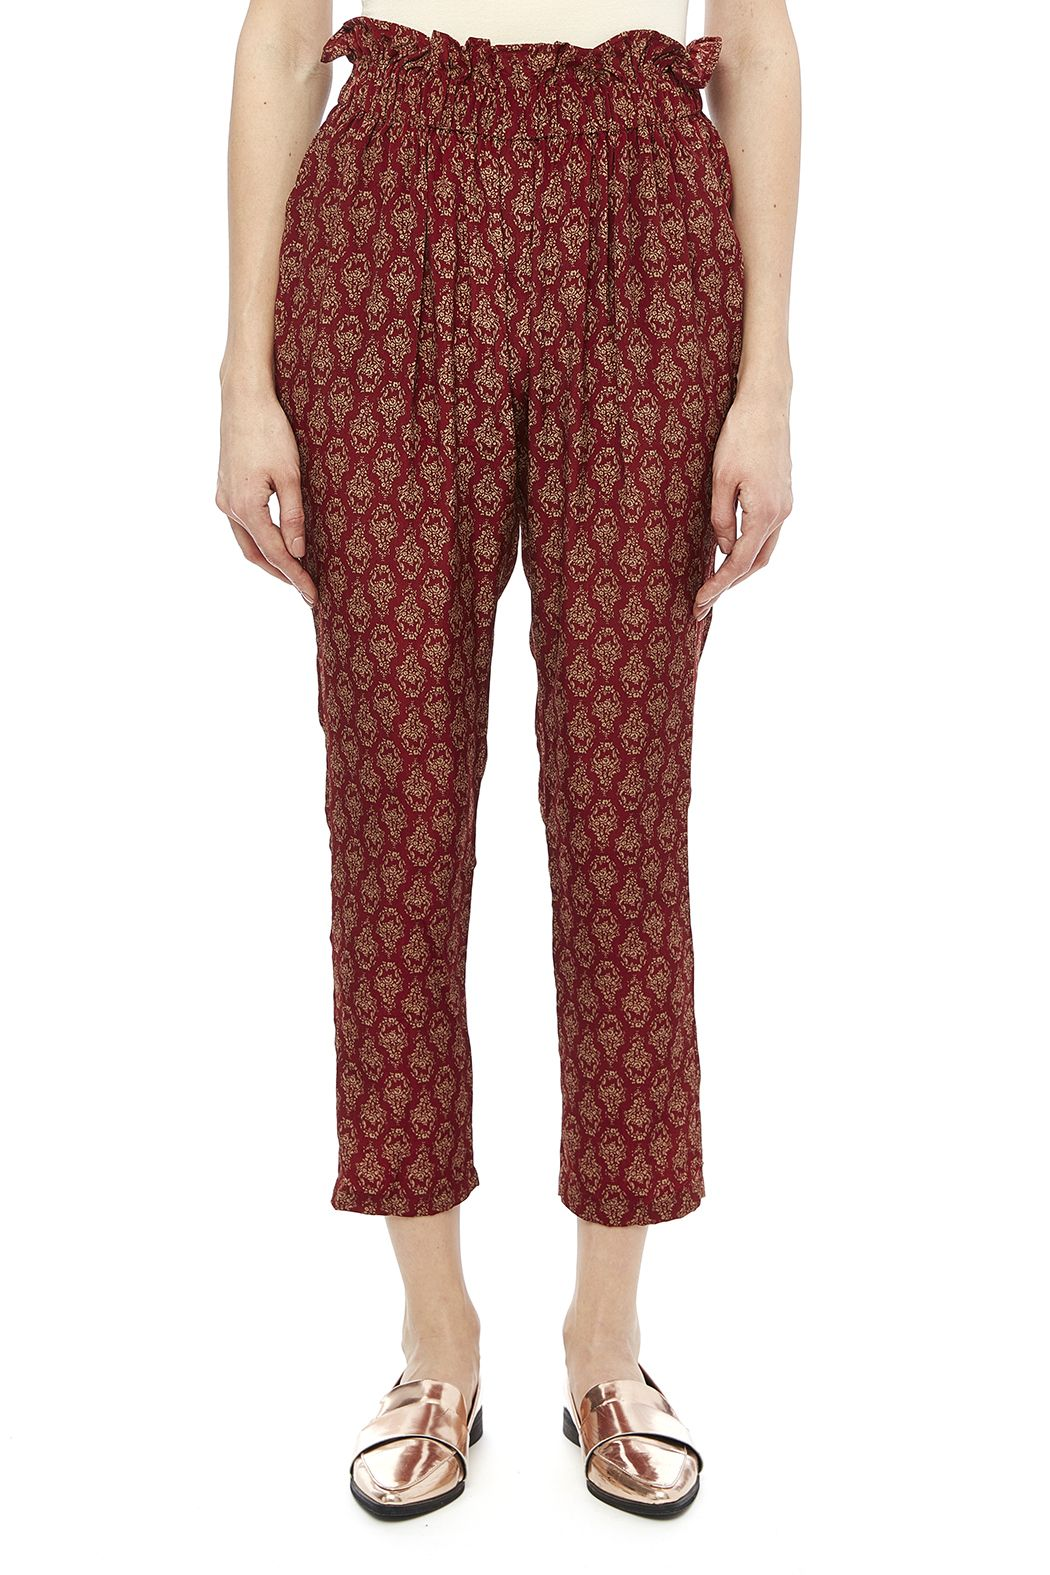 High waisted pants with elastic tapers at the ankles and an allover print.   High Waisted Harem by Umgee USA. Clothing - Bottoms - Pants & Leggings - Joggers Clothing - Bottoms - Pants & Leggings - High-Waisted New Orleans, Louisiana